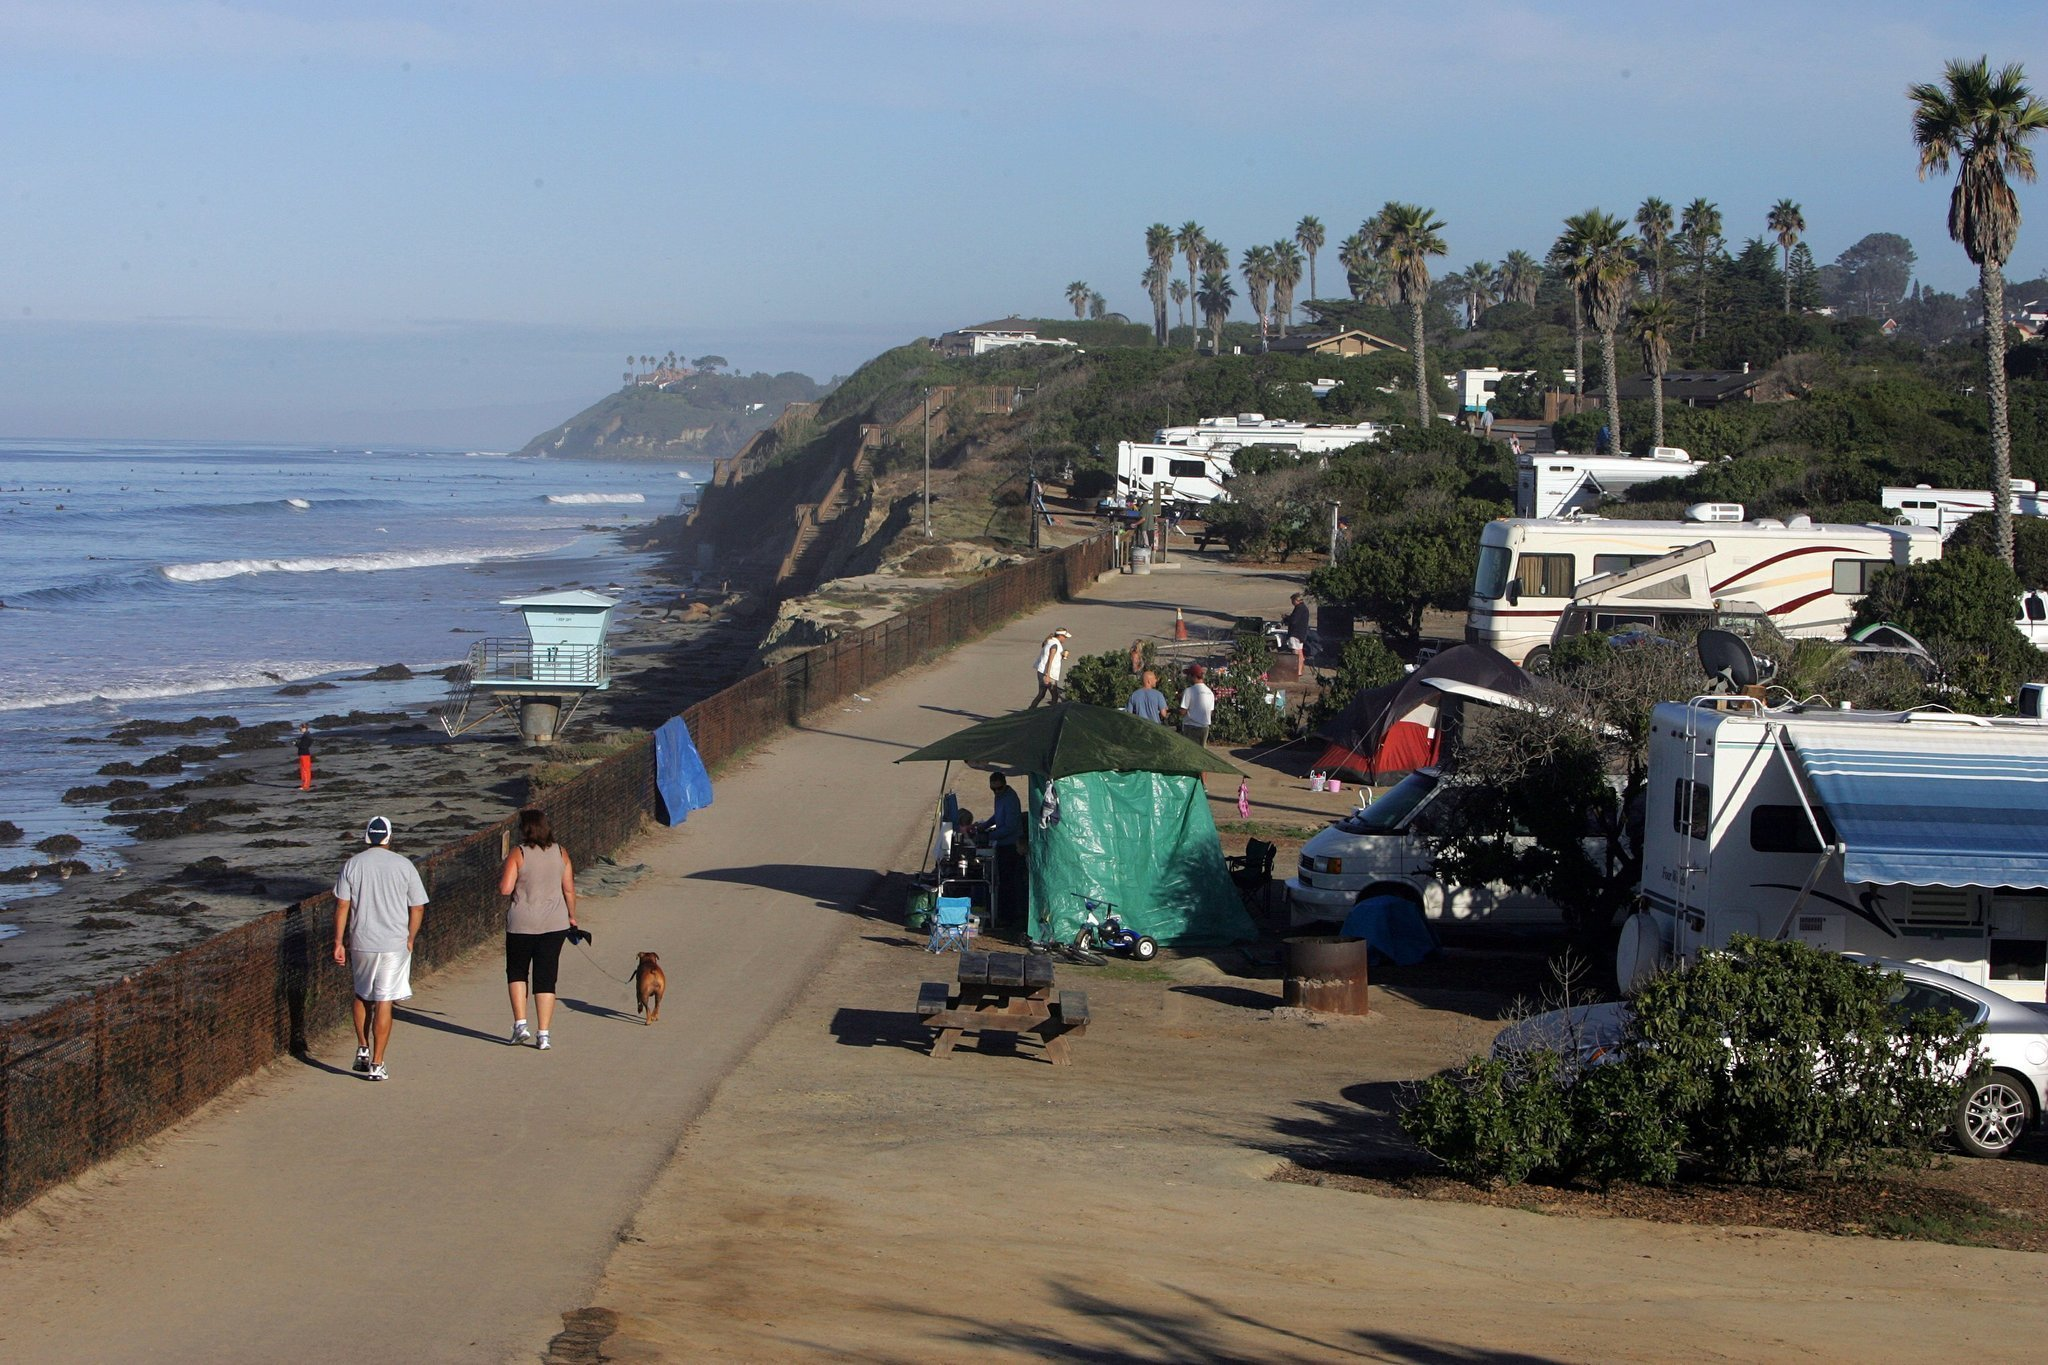 Winter Can Be The Hot Time For Camping At Beach San Go Union Tribune